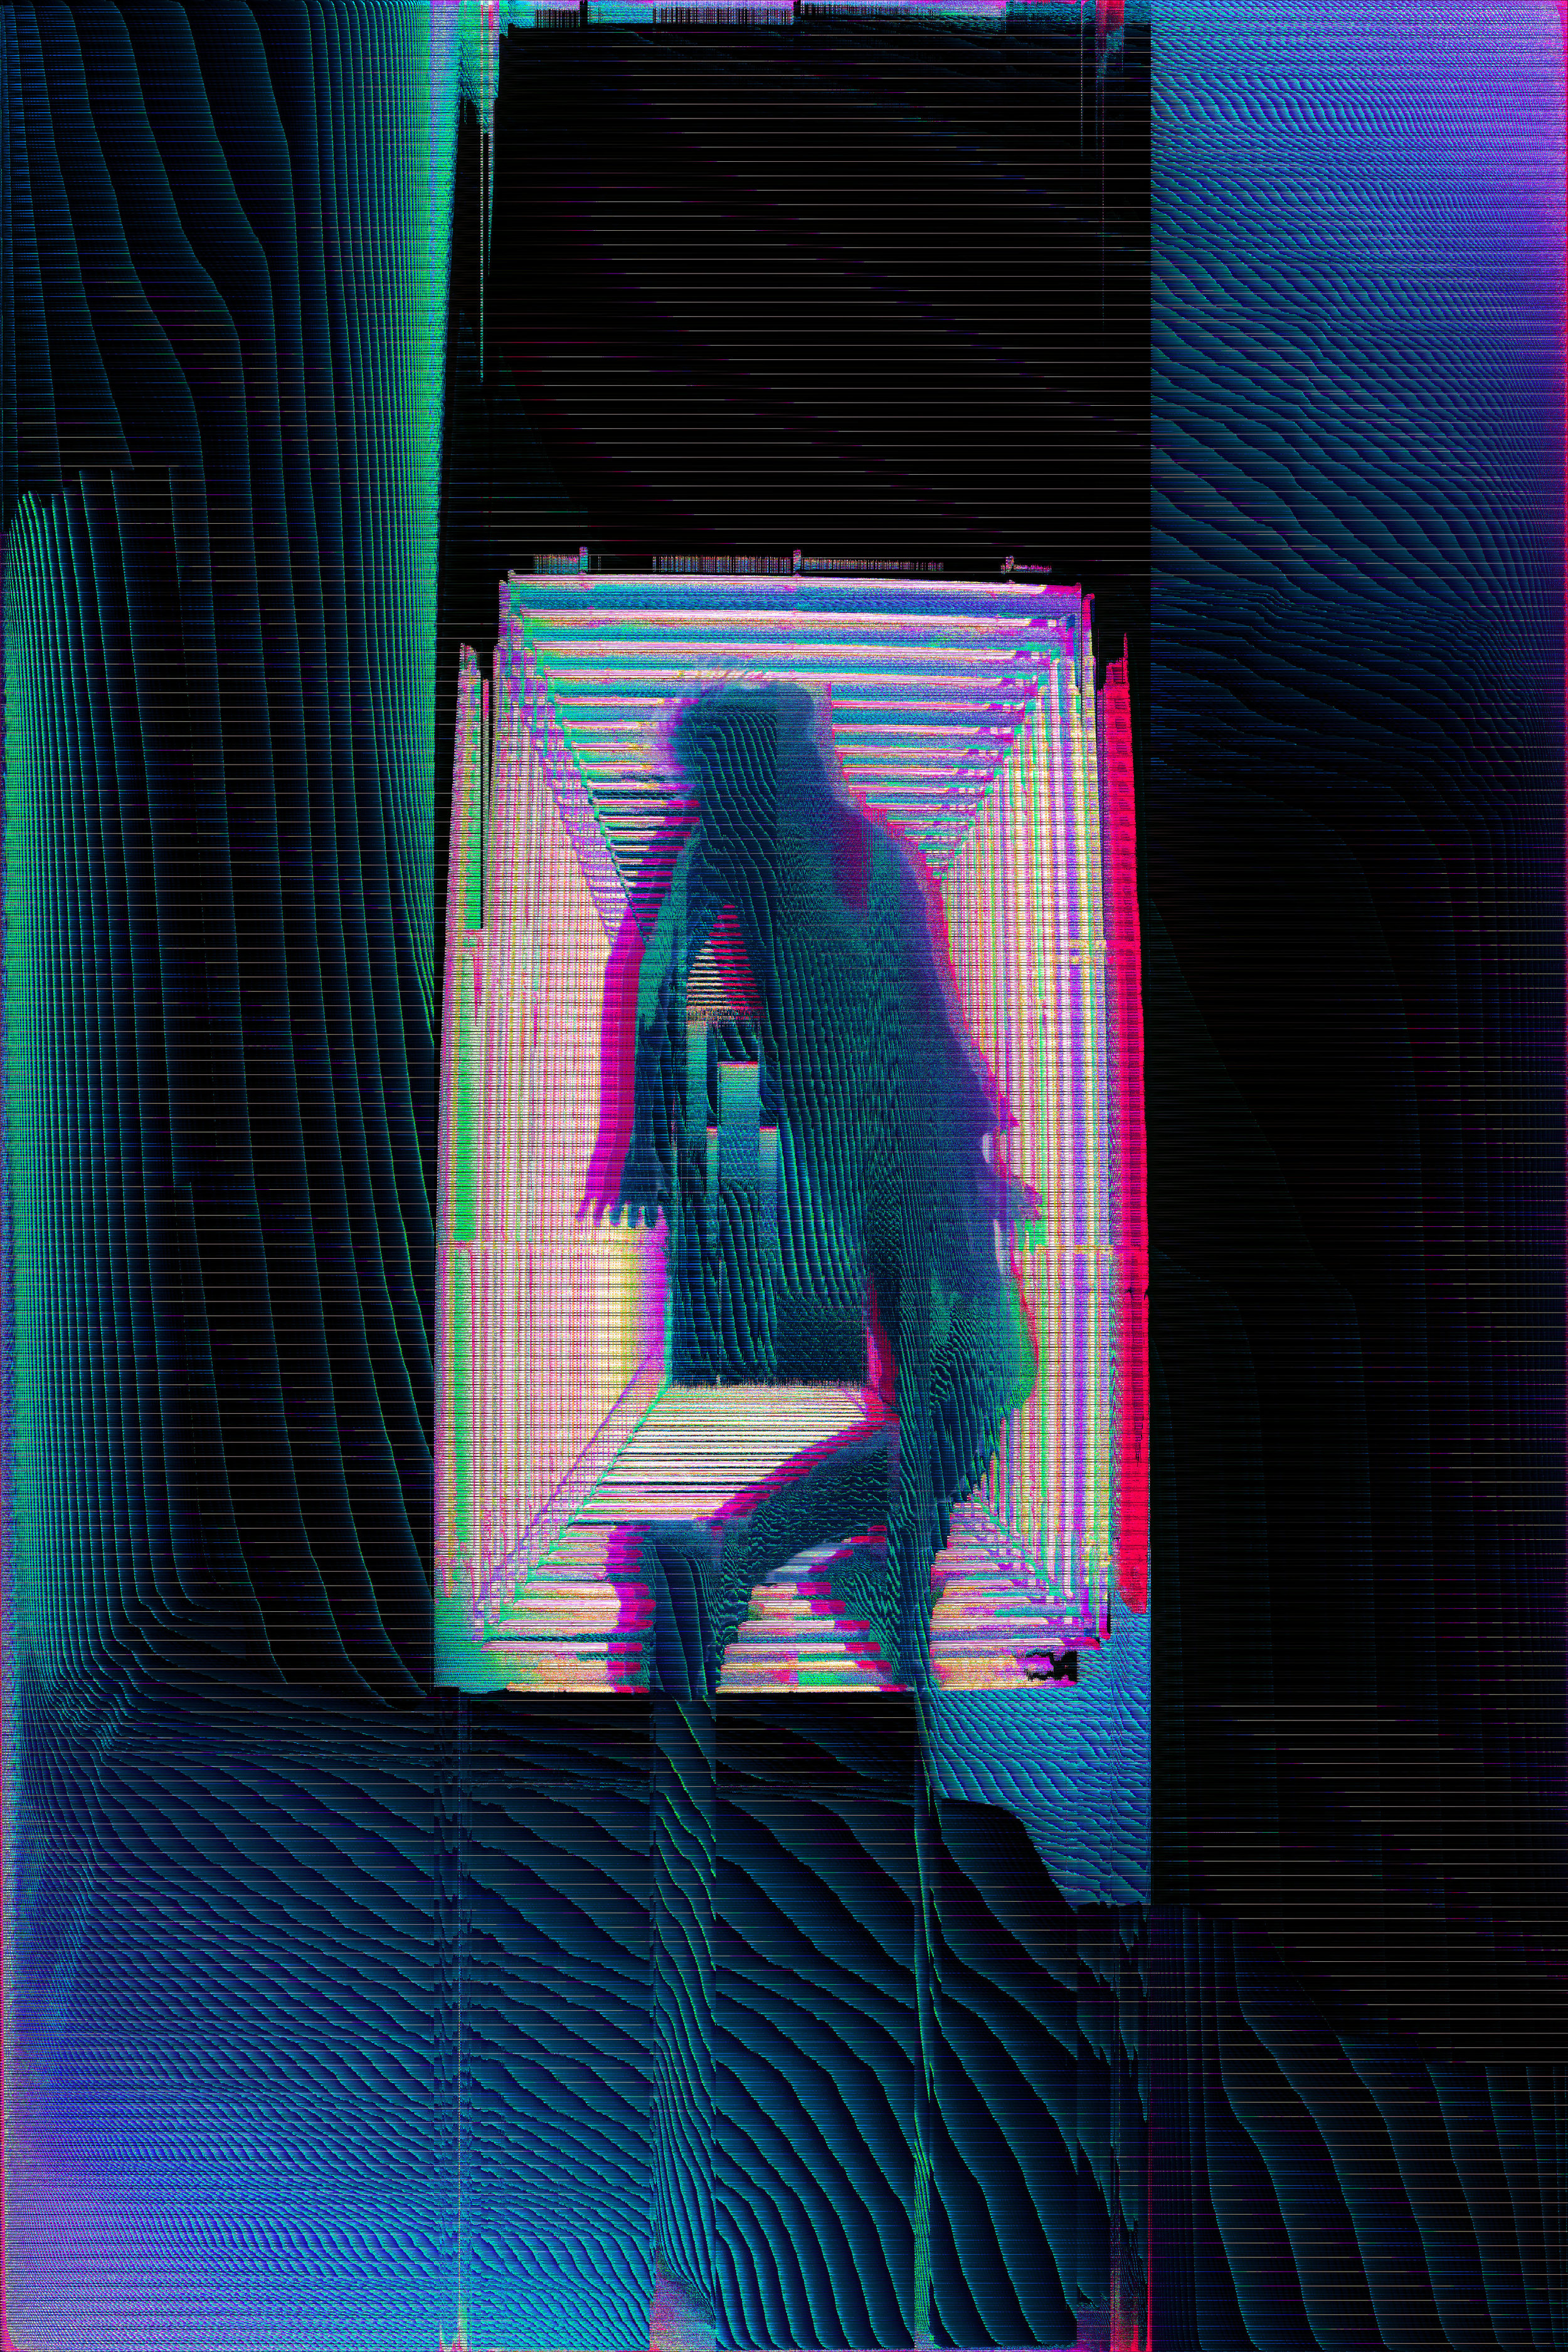 anaglych_20